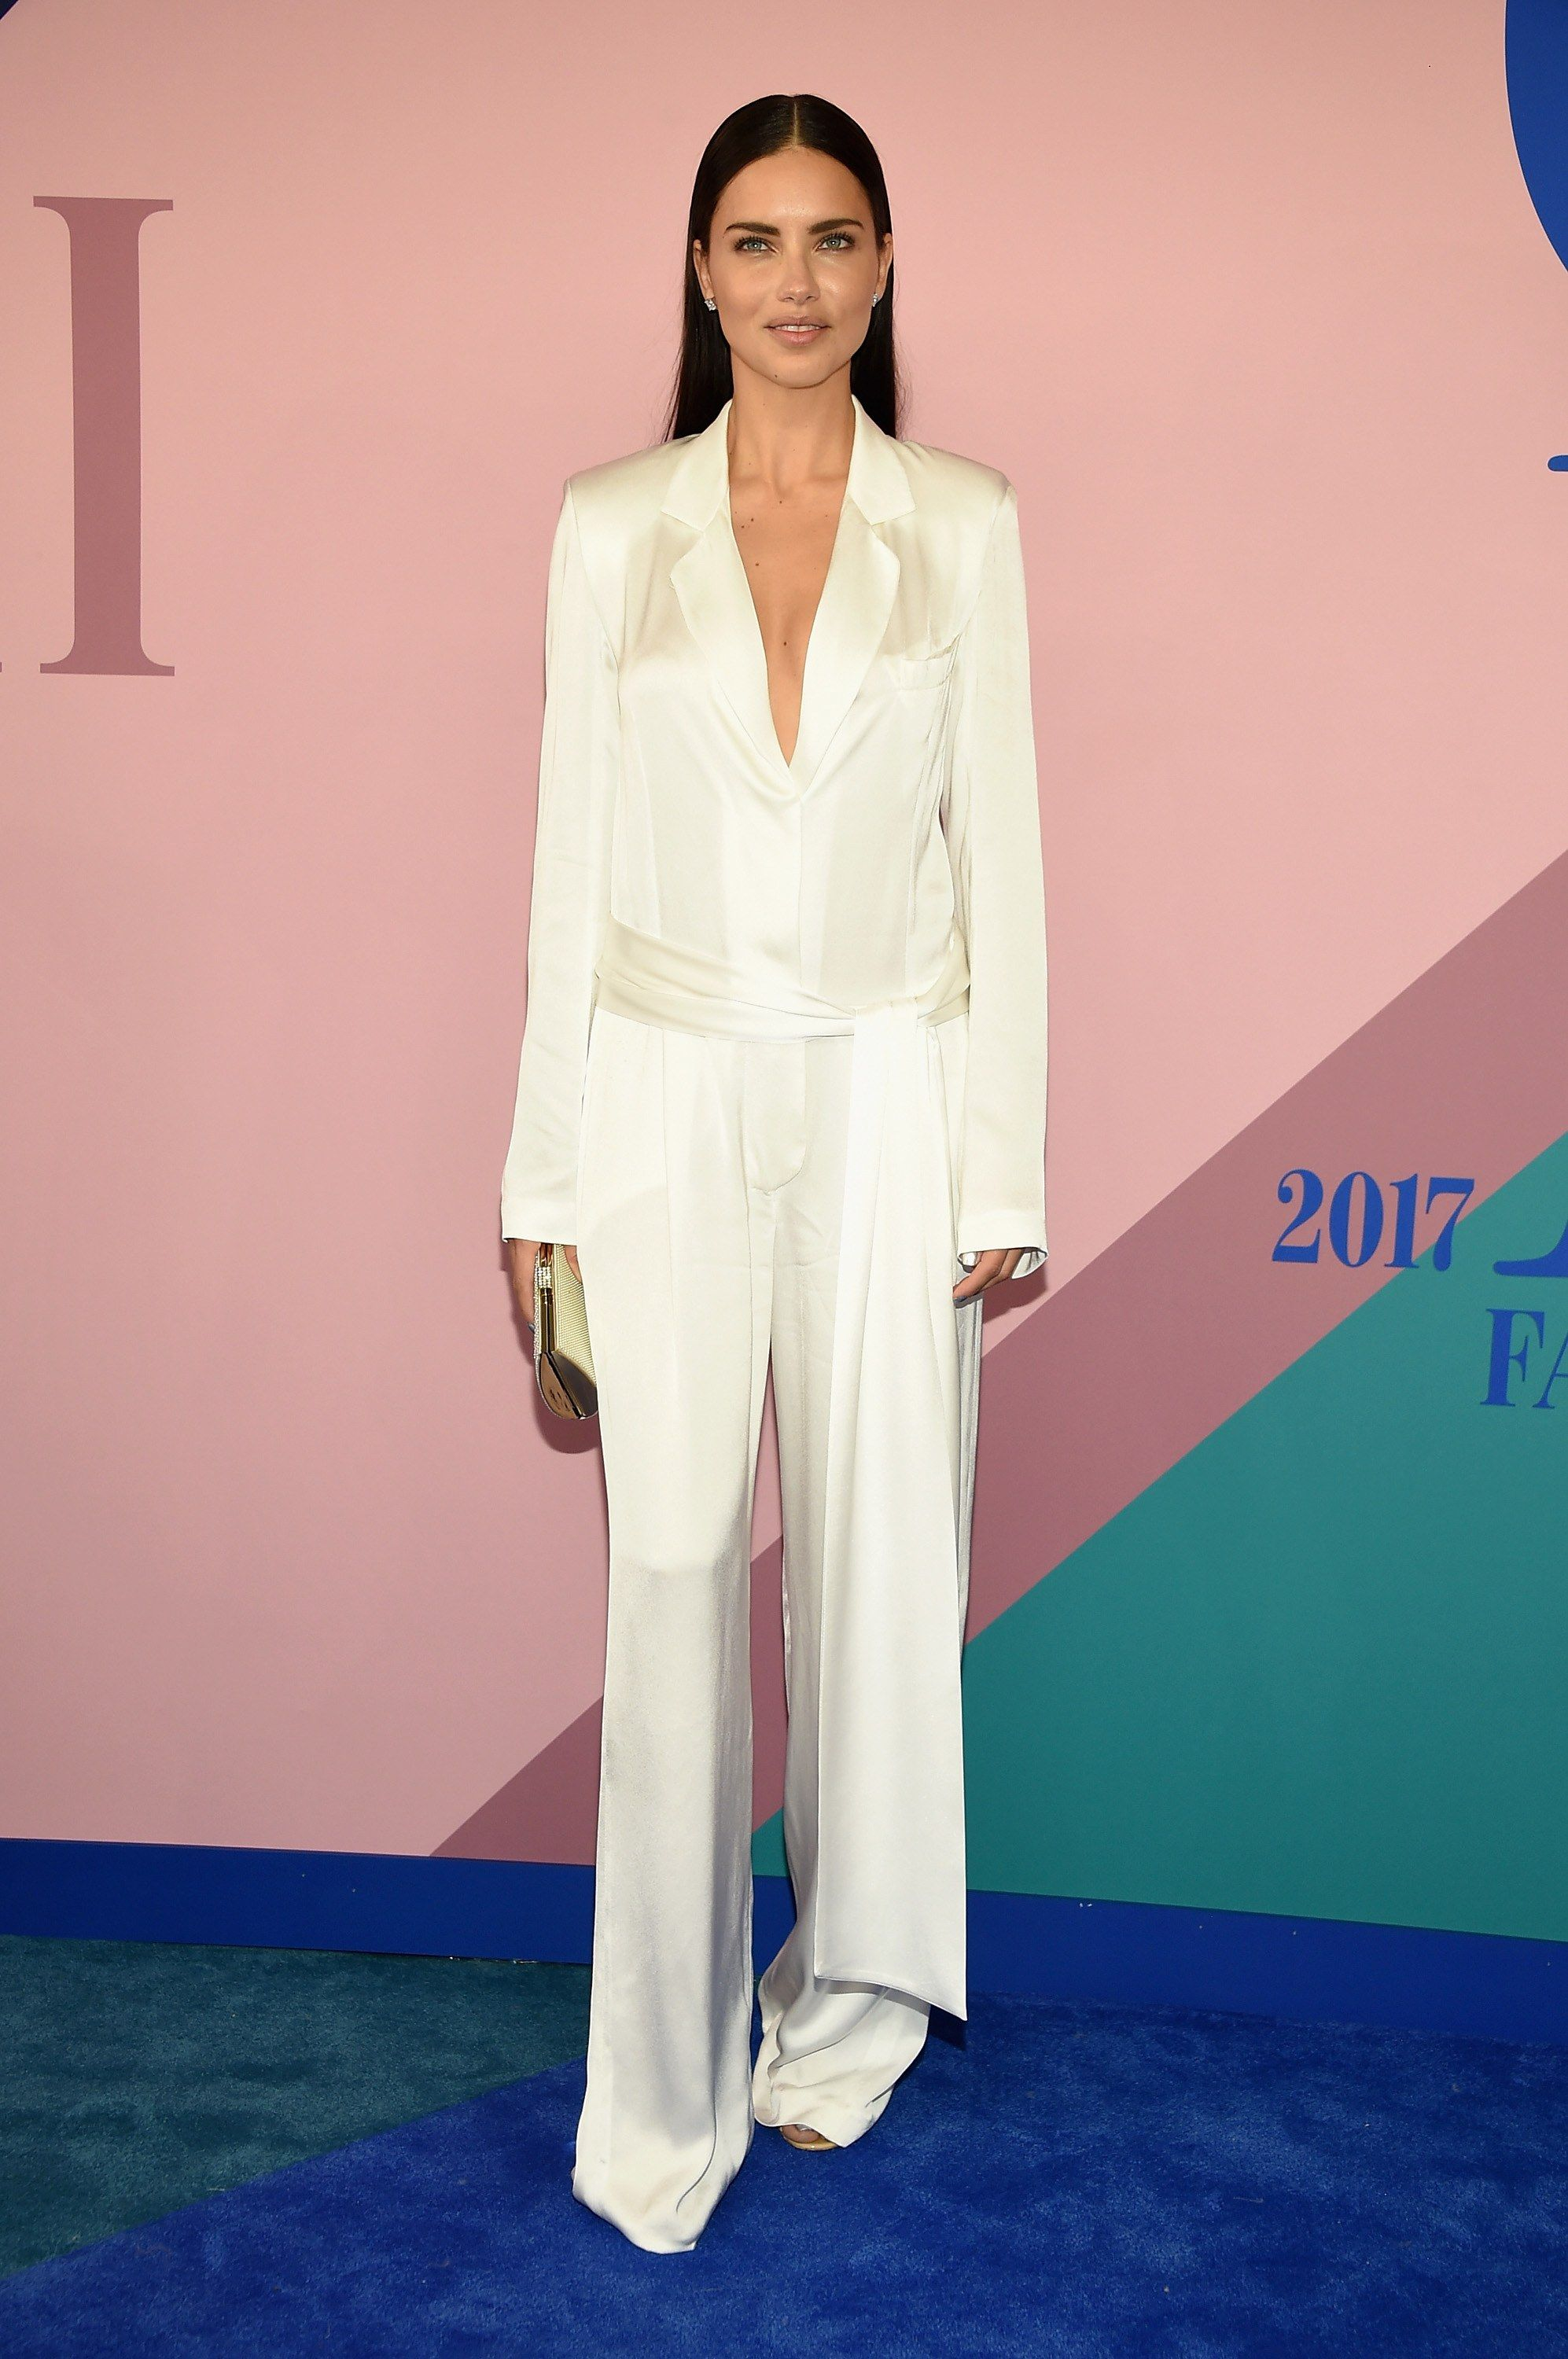 CFDA Awards 2017: Fashion—Live From the Red Carpet   Noche, Eventos ...